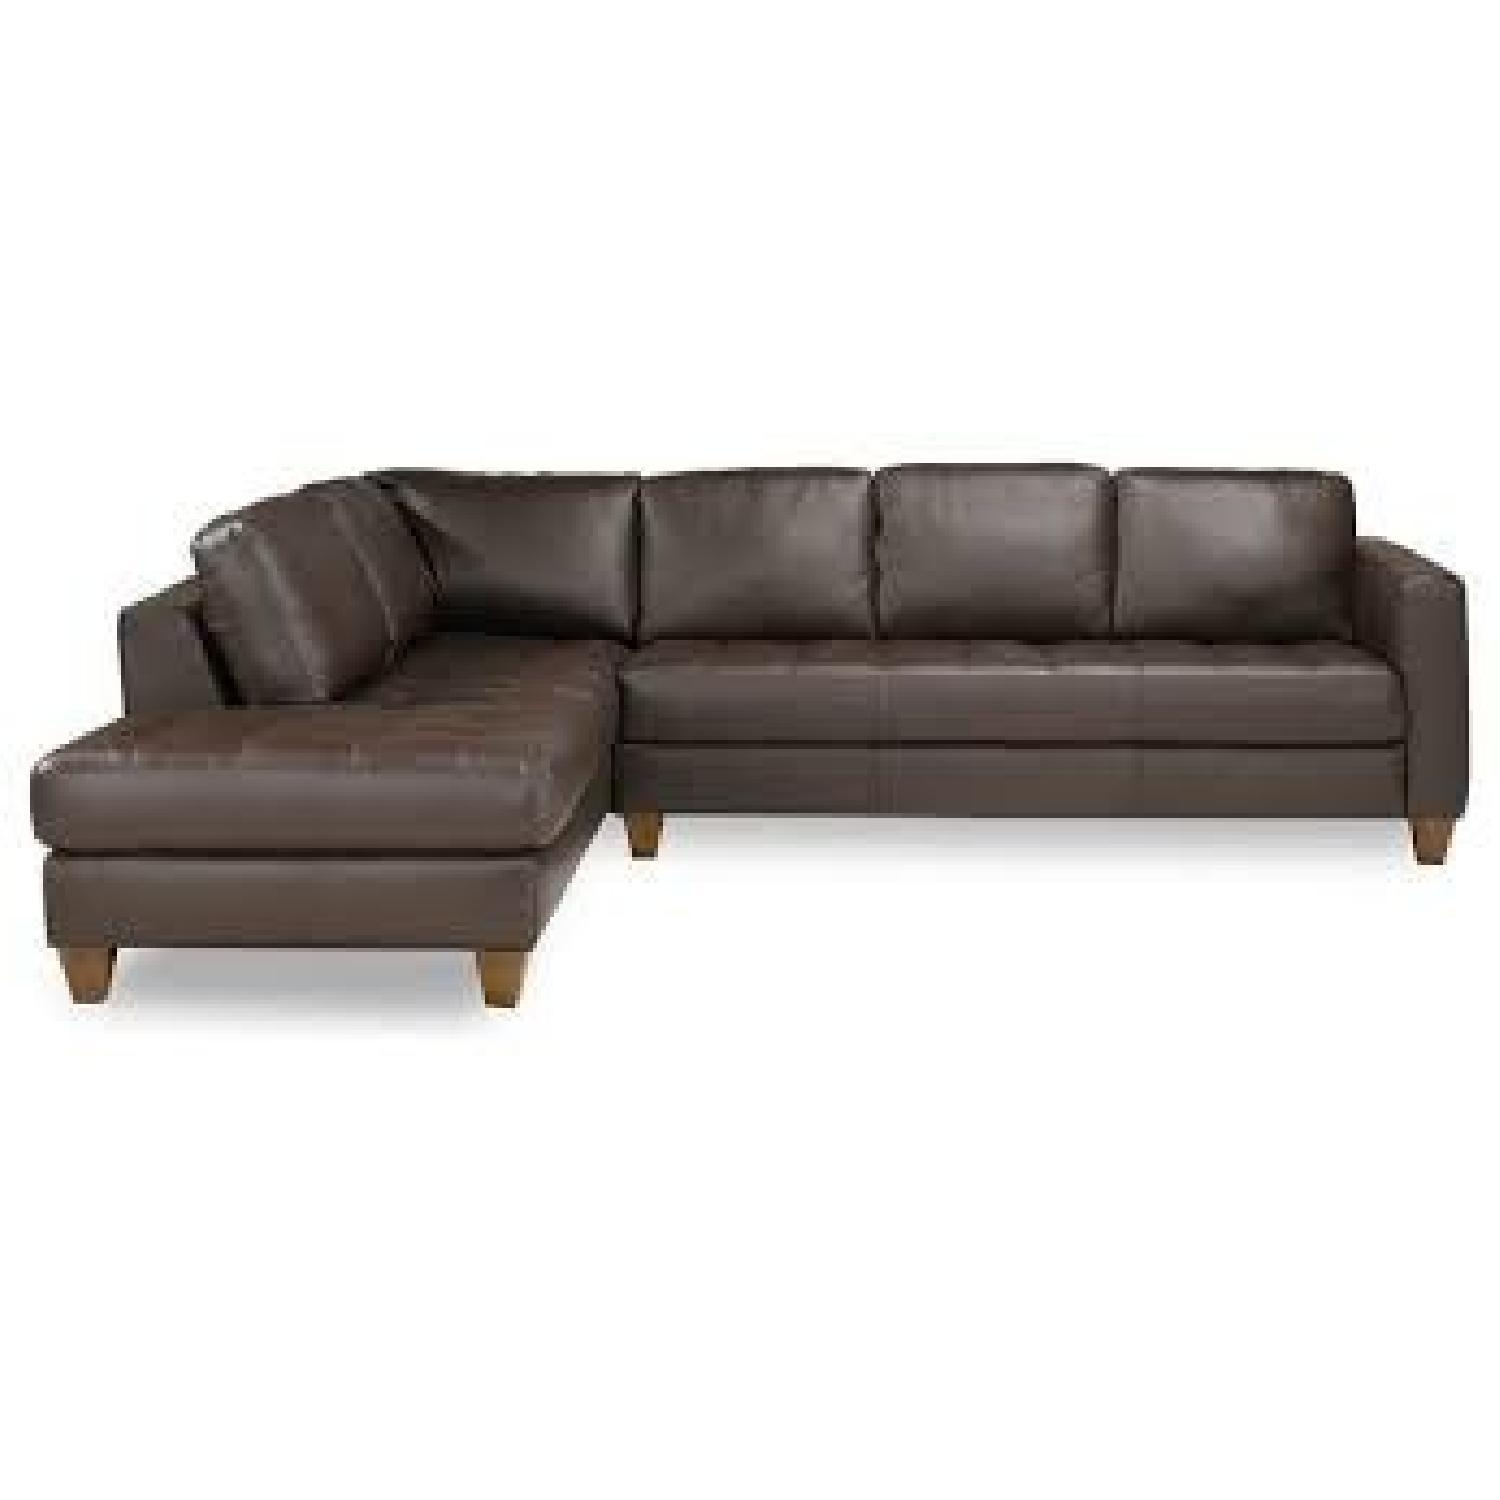 Macy's Milano Brown Leather Sectional Sofa – Aptdeco Within Macys Leather Sofas Sectionals (View 5 of 20)